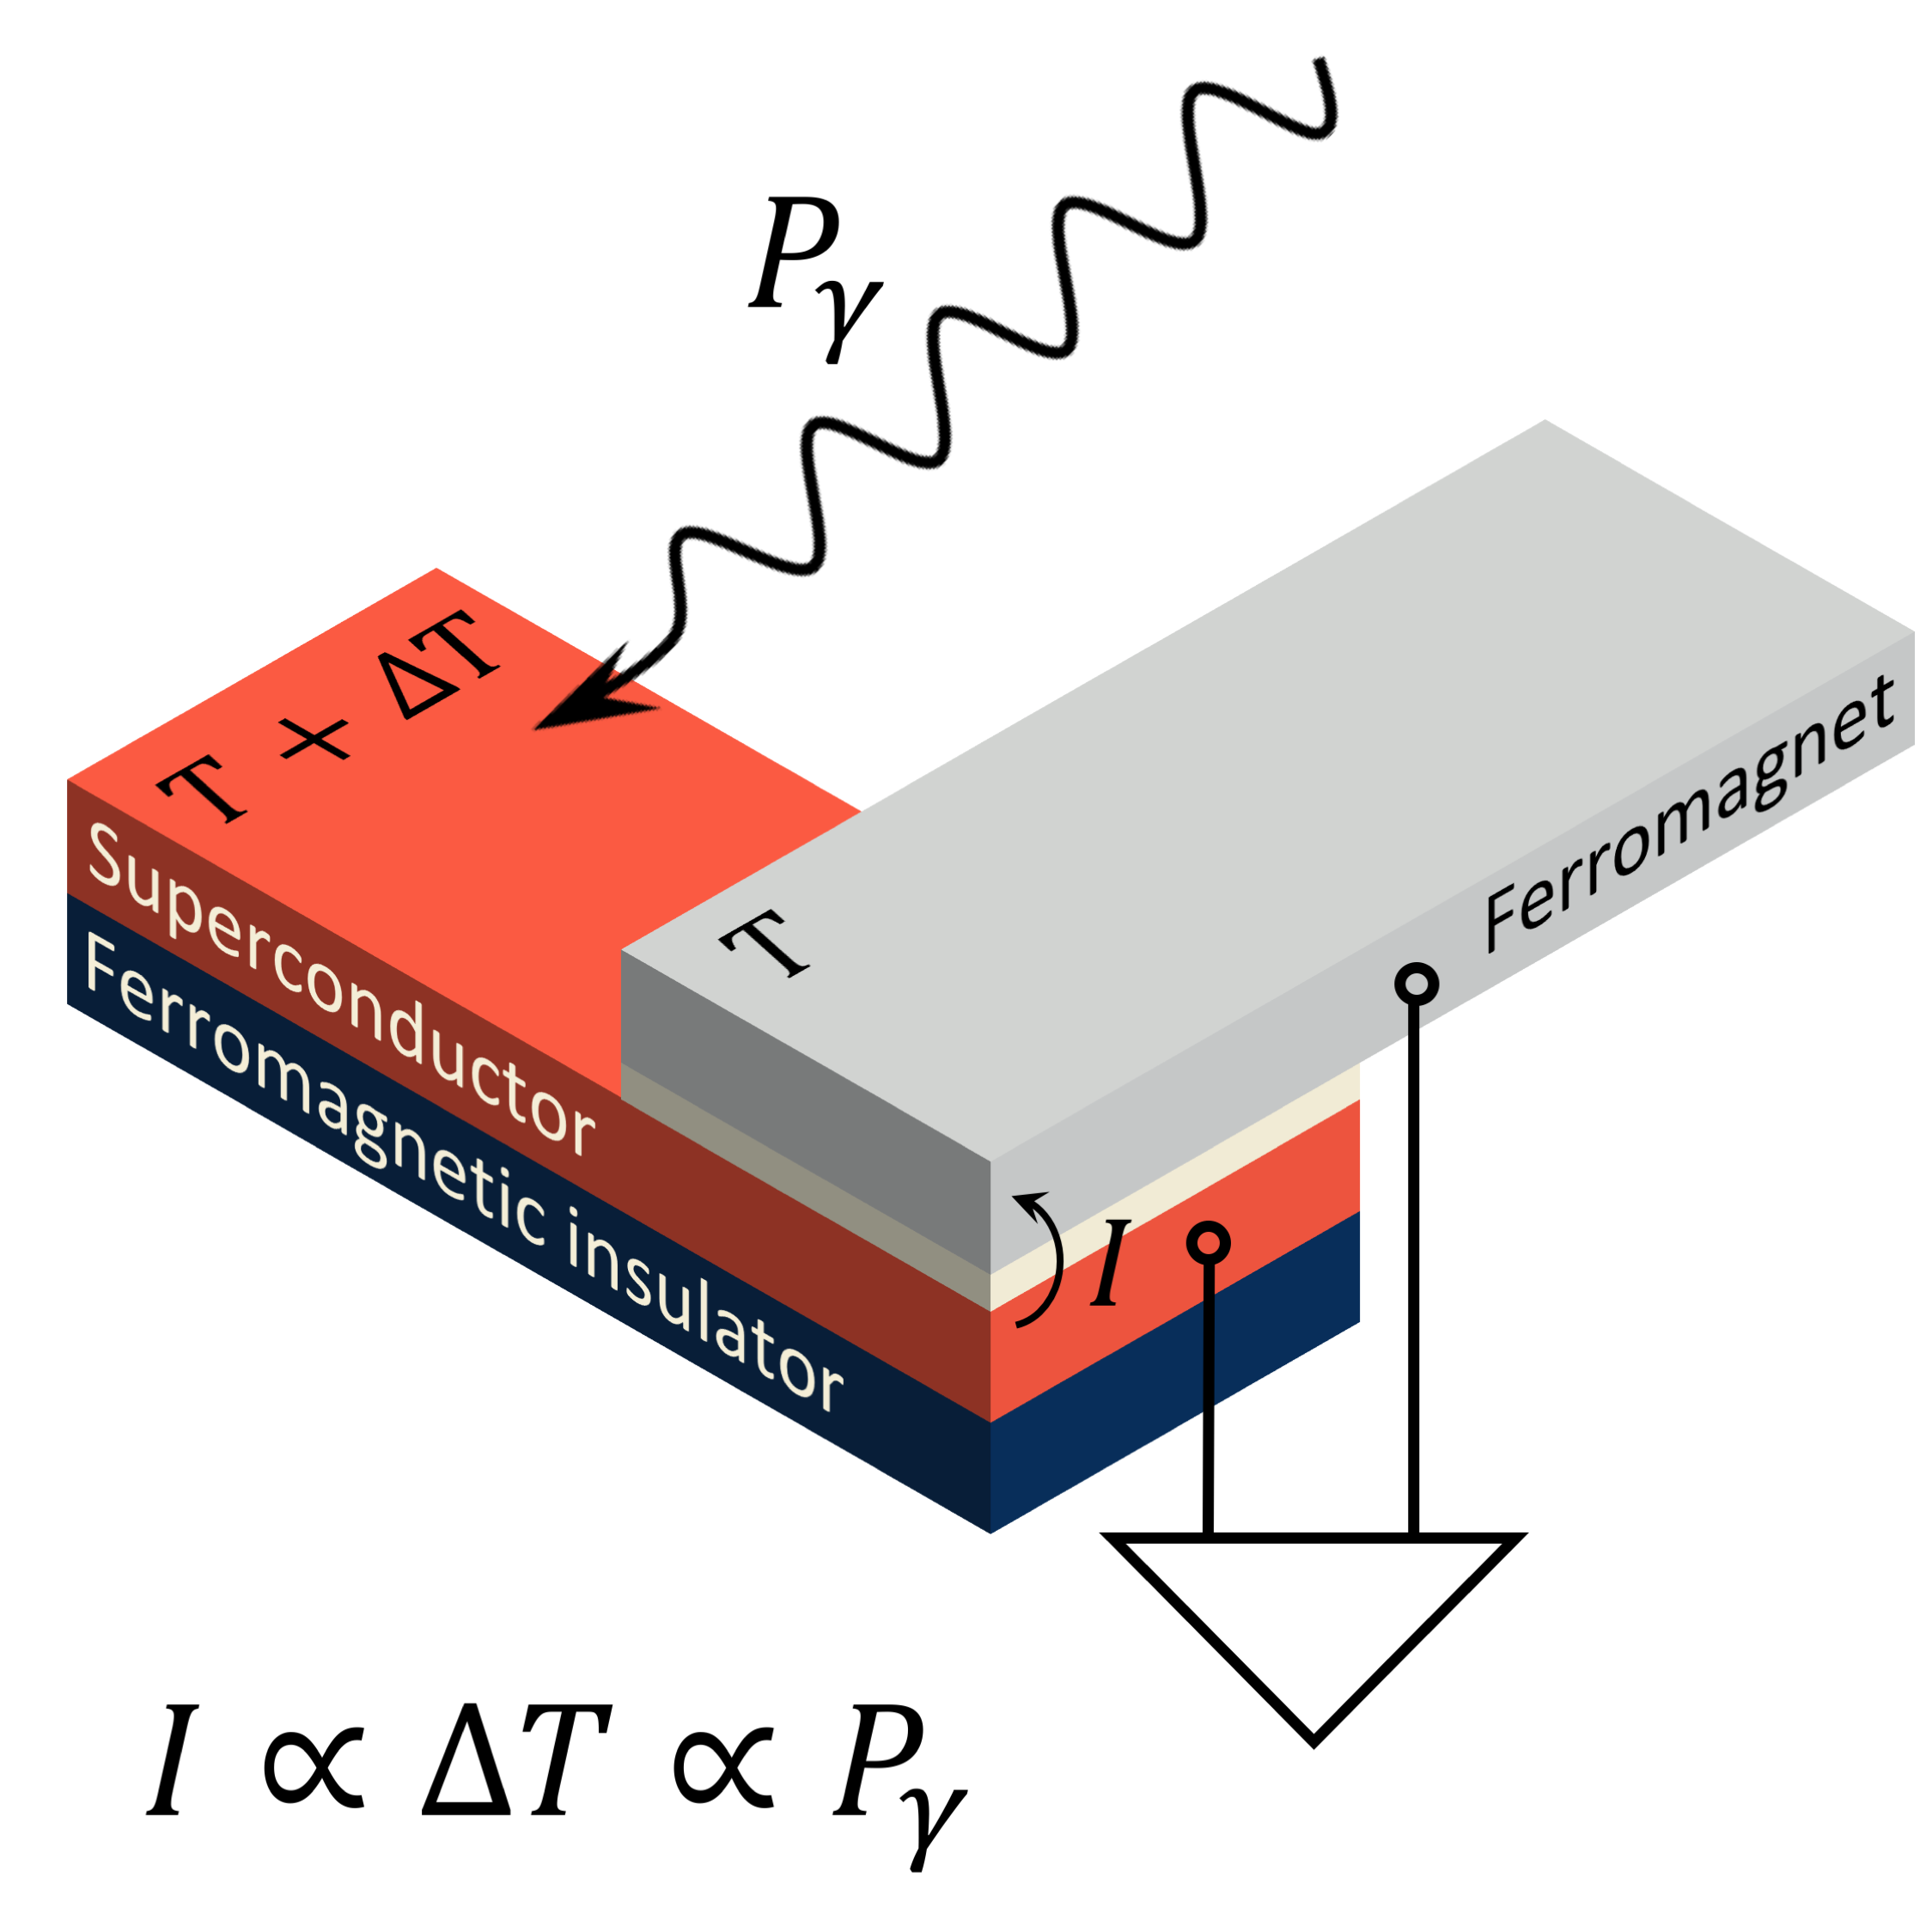 SUPERconducting ThermoElectric Detector